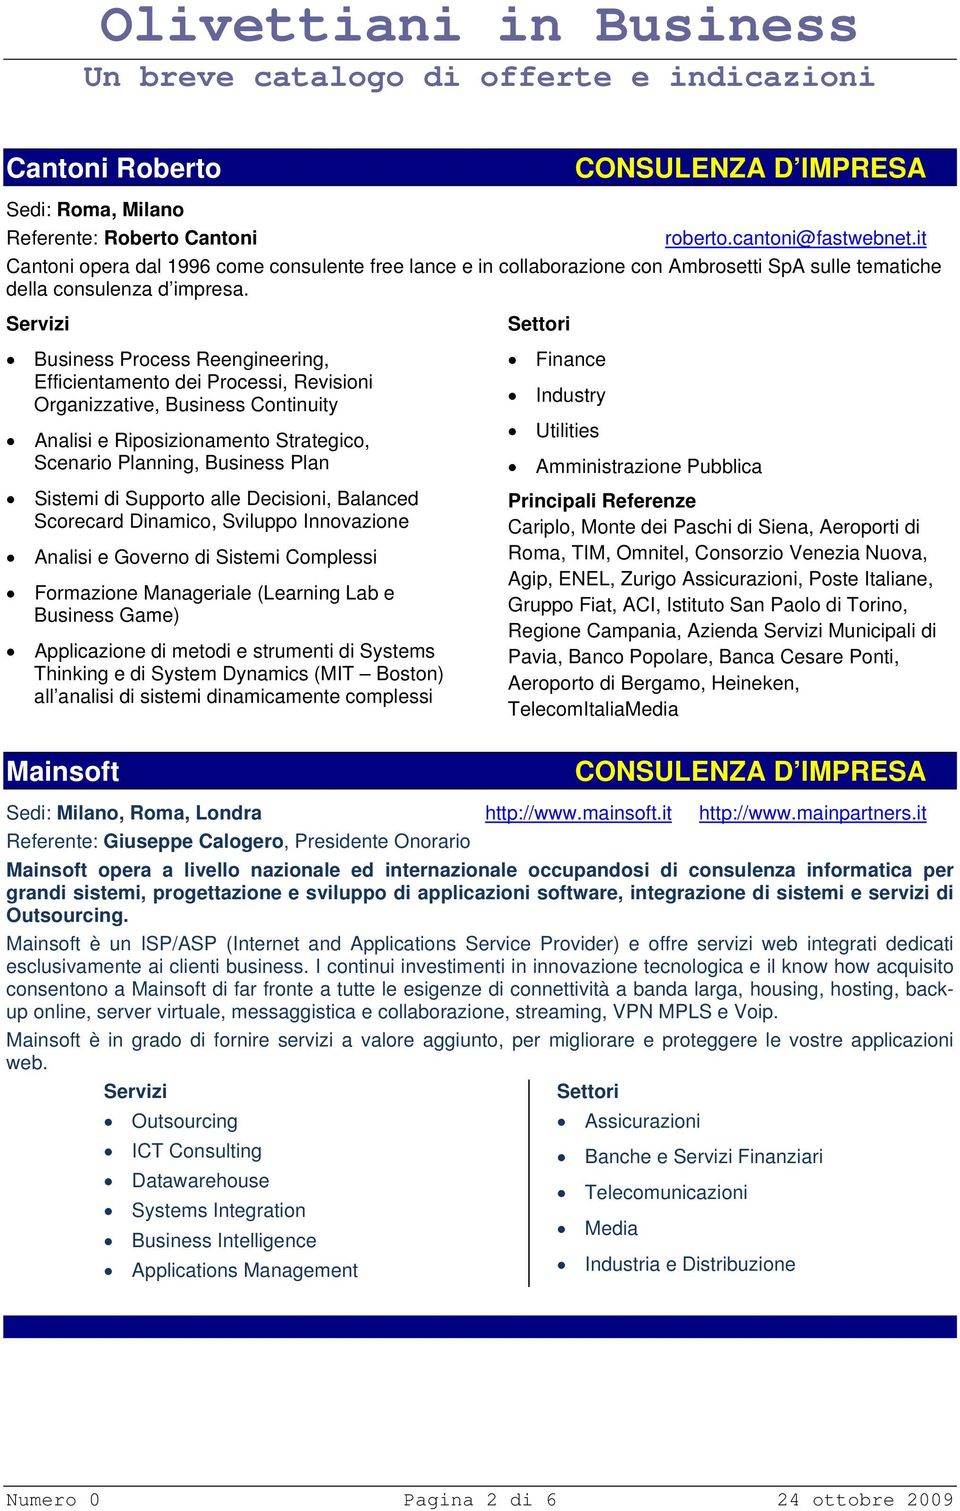 Business Process Reengineering, Efficientamento dei Processi, Revisioni Organizzative, Business Continuity Analisi e Riposizionamento Strategico, Scenario Planning, Business Plan Sistemi di Supporto